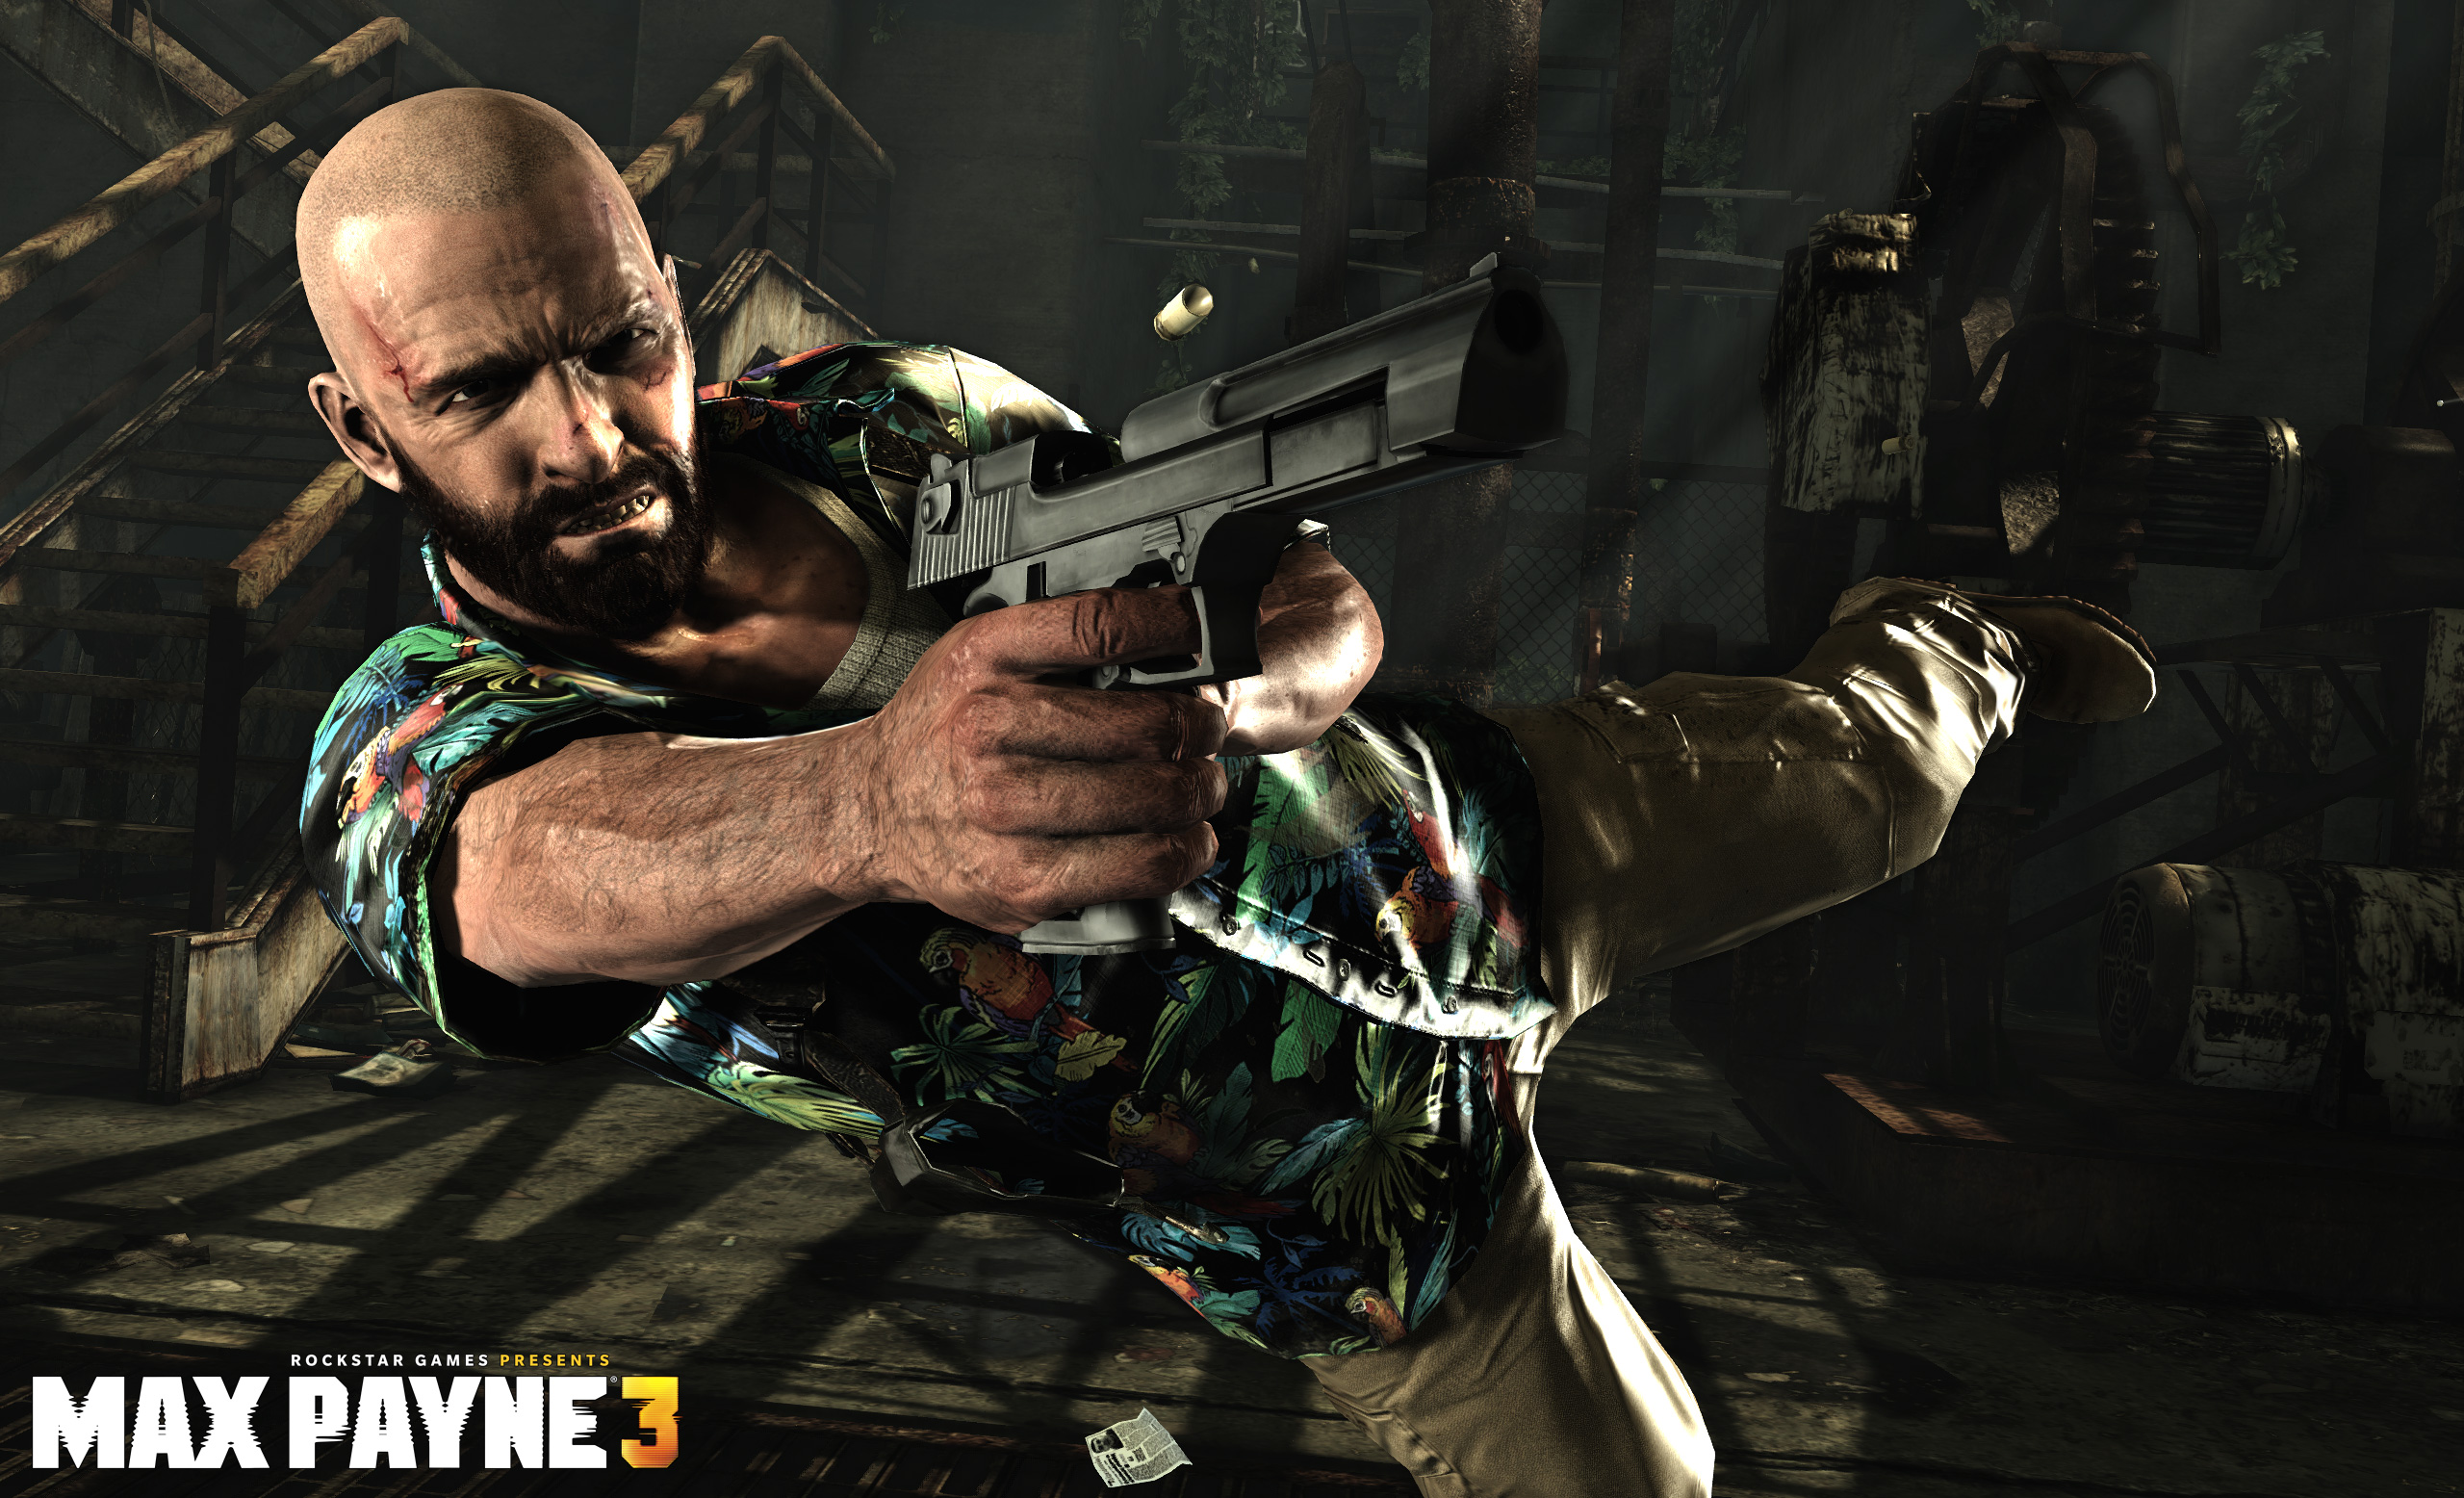 Max Payne 3's massive 35GB install vs. other big games